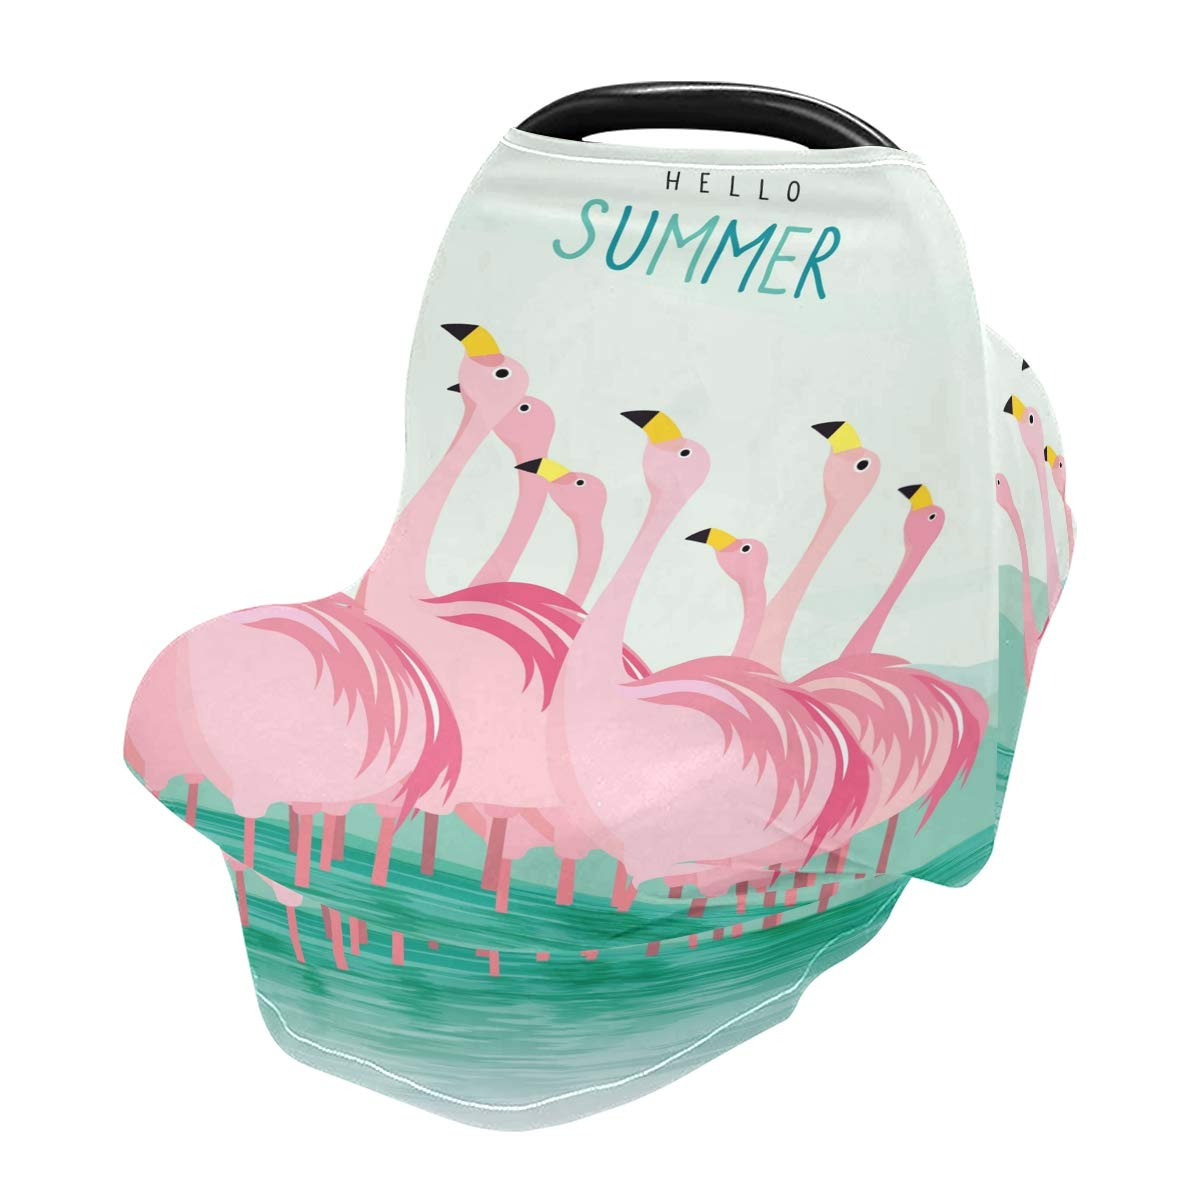 Nursing Cover Pink Flamingos Breastfeeding Soft Carseat Canopy Multi Use for Baby Car Seat Covers Canopy Shopping Cart Cover Scarf Light Blanket Stroller Cover